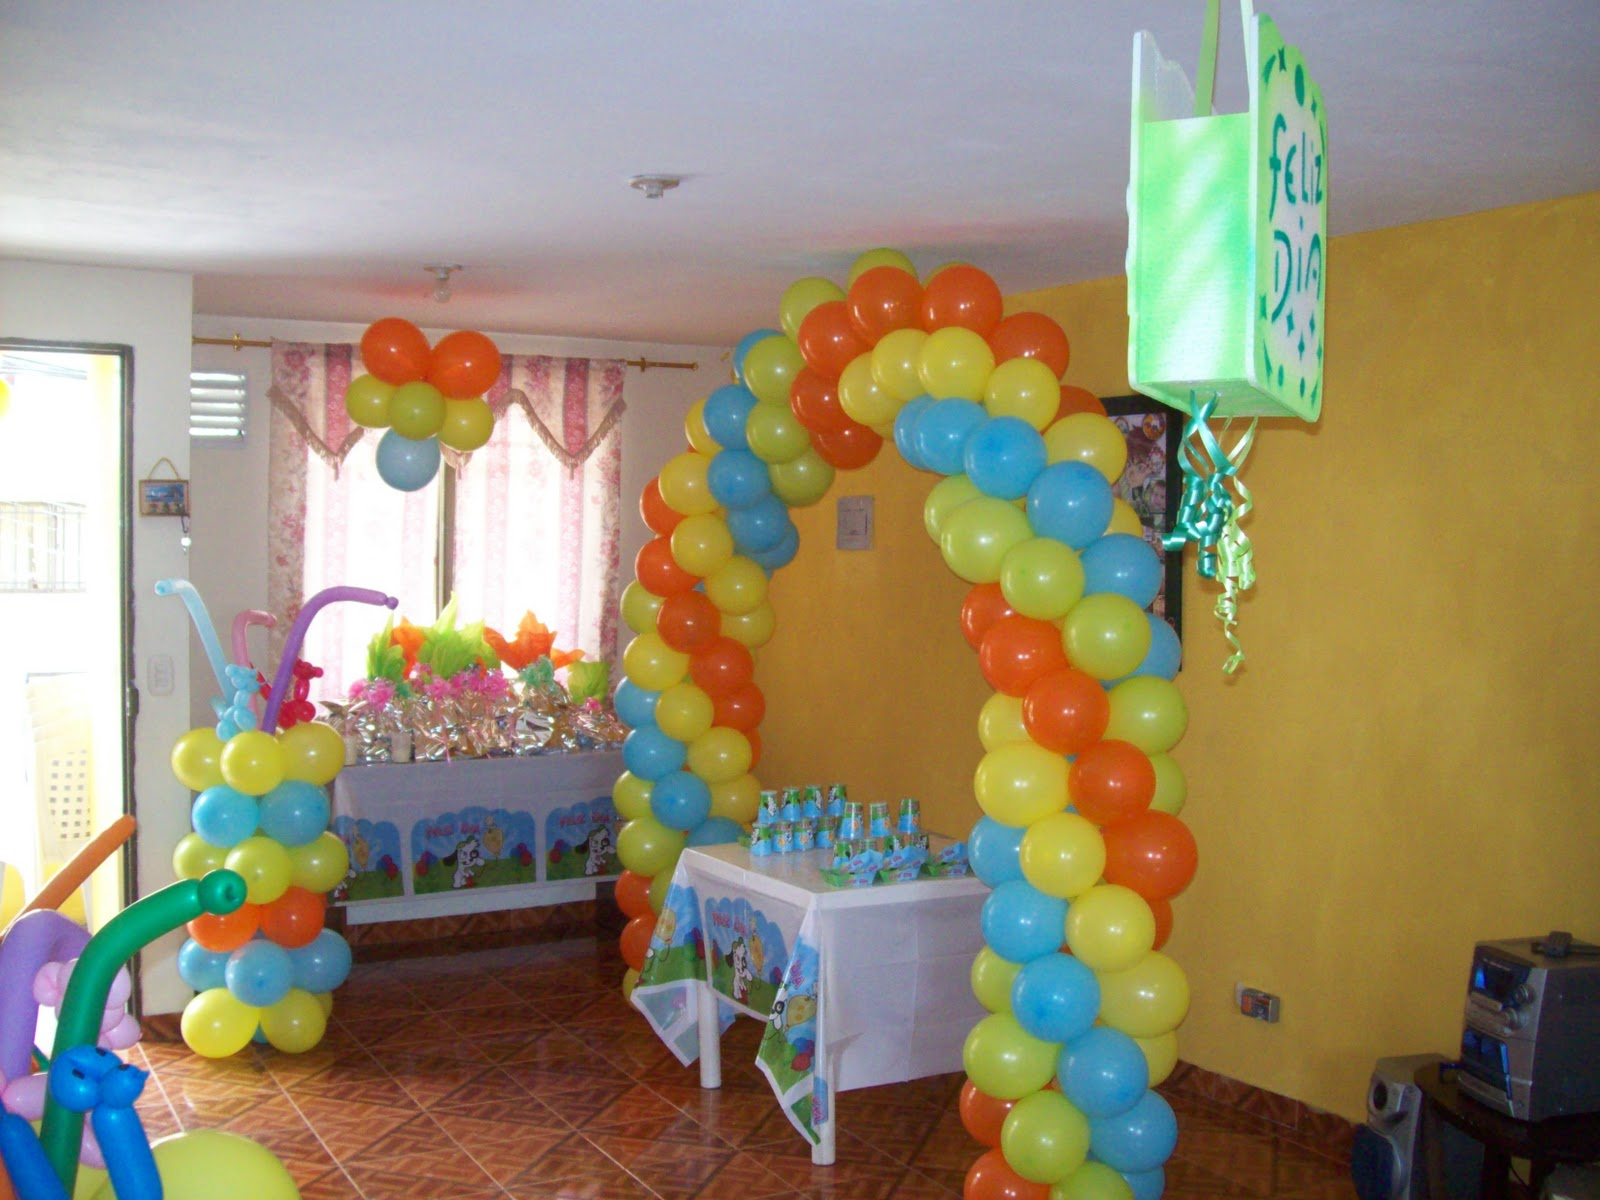 Decoracion arcos con globos recreacionistas medellin y - Decoracion para fotos ...